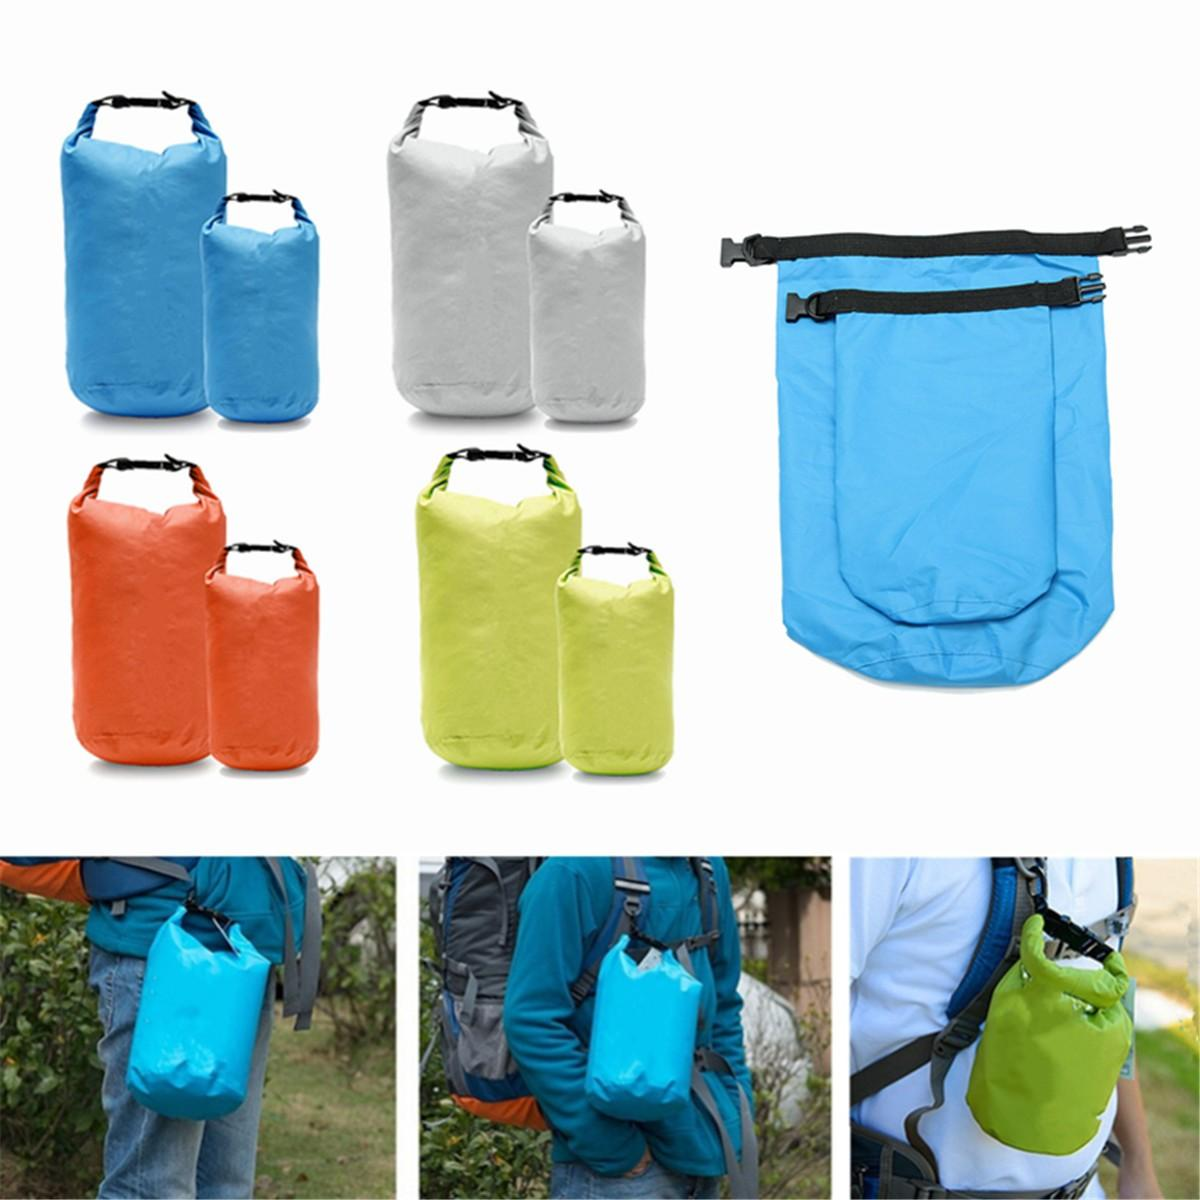 Sports & Entertainment Outdoor Portable Pvc Waterproof Backpack Storage Sack Kayak Rafting Bag Sport Bags Travel Equipment Street Price